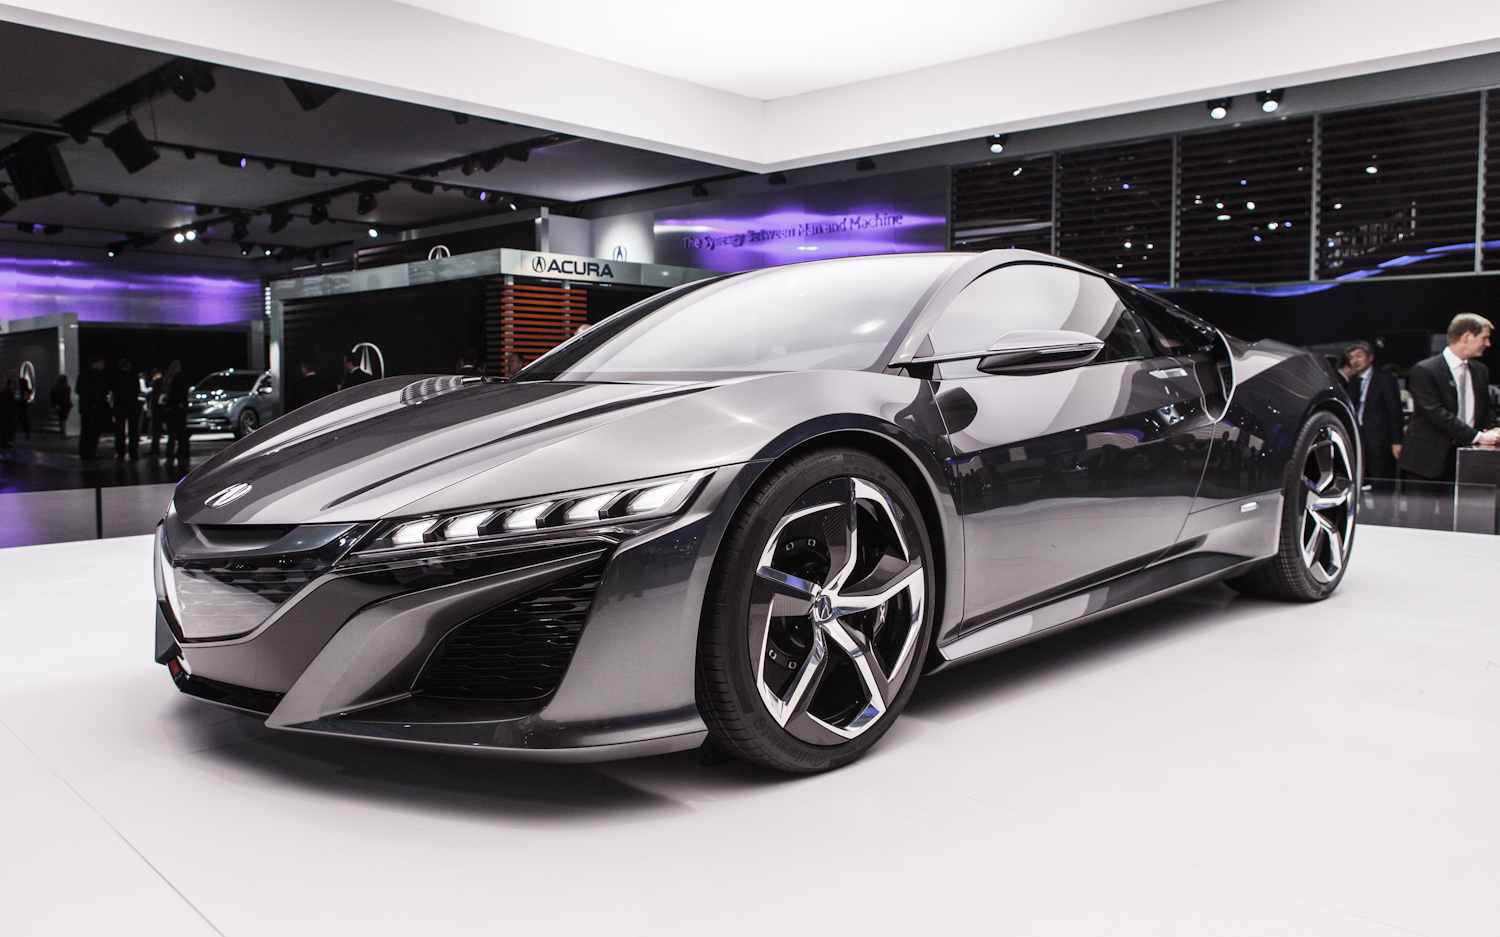 Acura Cars 2019 2018 Reviews Photos Video Specs Price